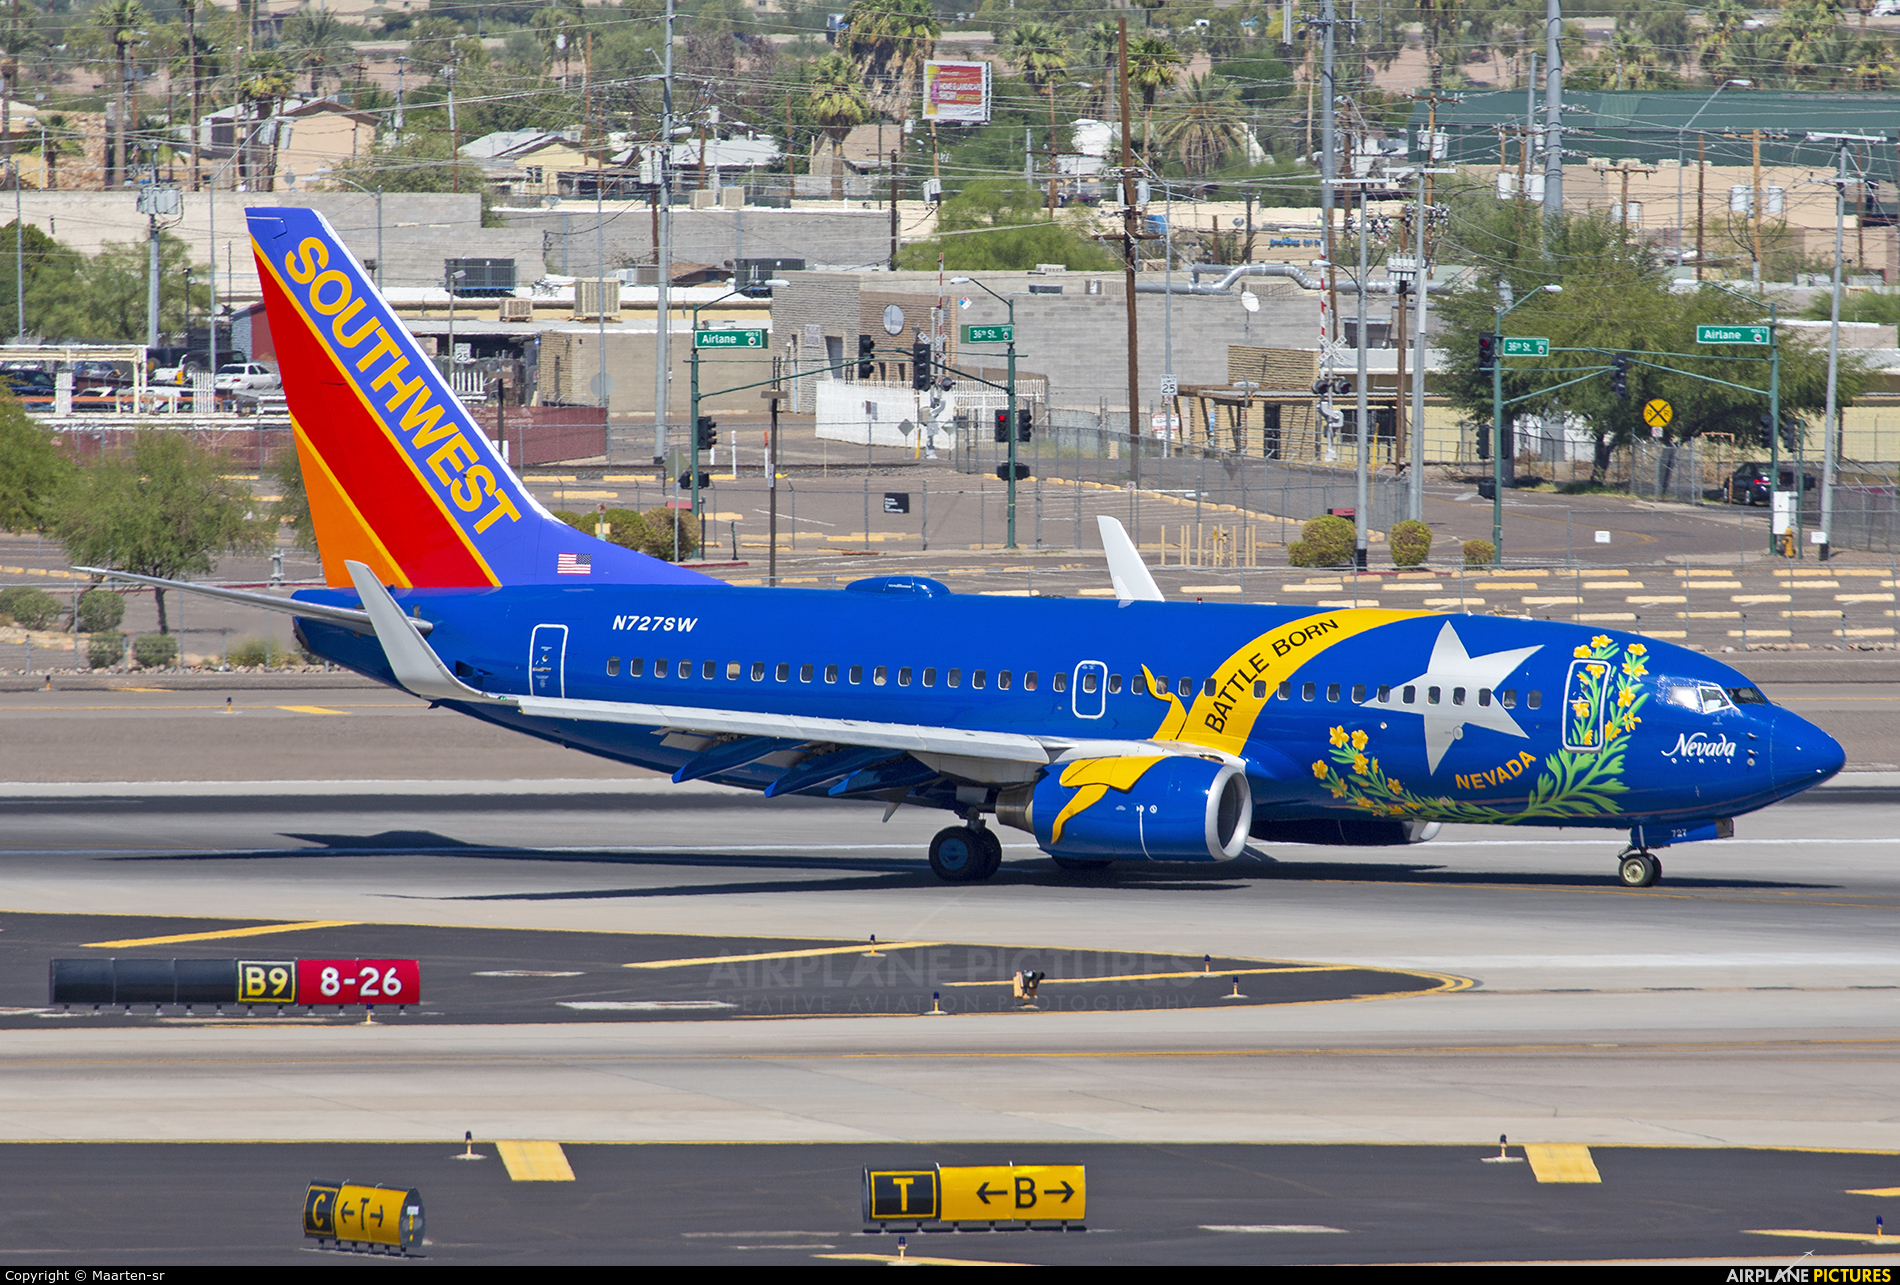 Southwest Airlines N727SW aircraft at Phoenix - Sky Harbor Intl